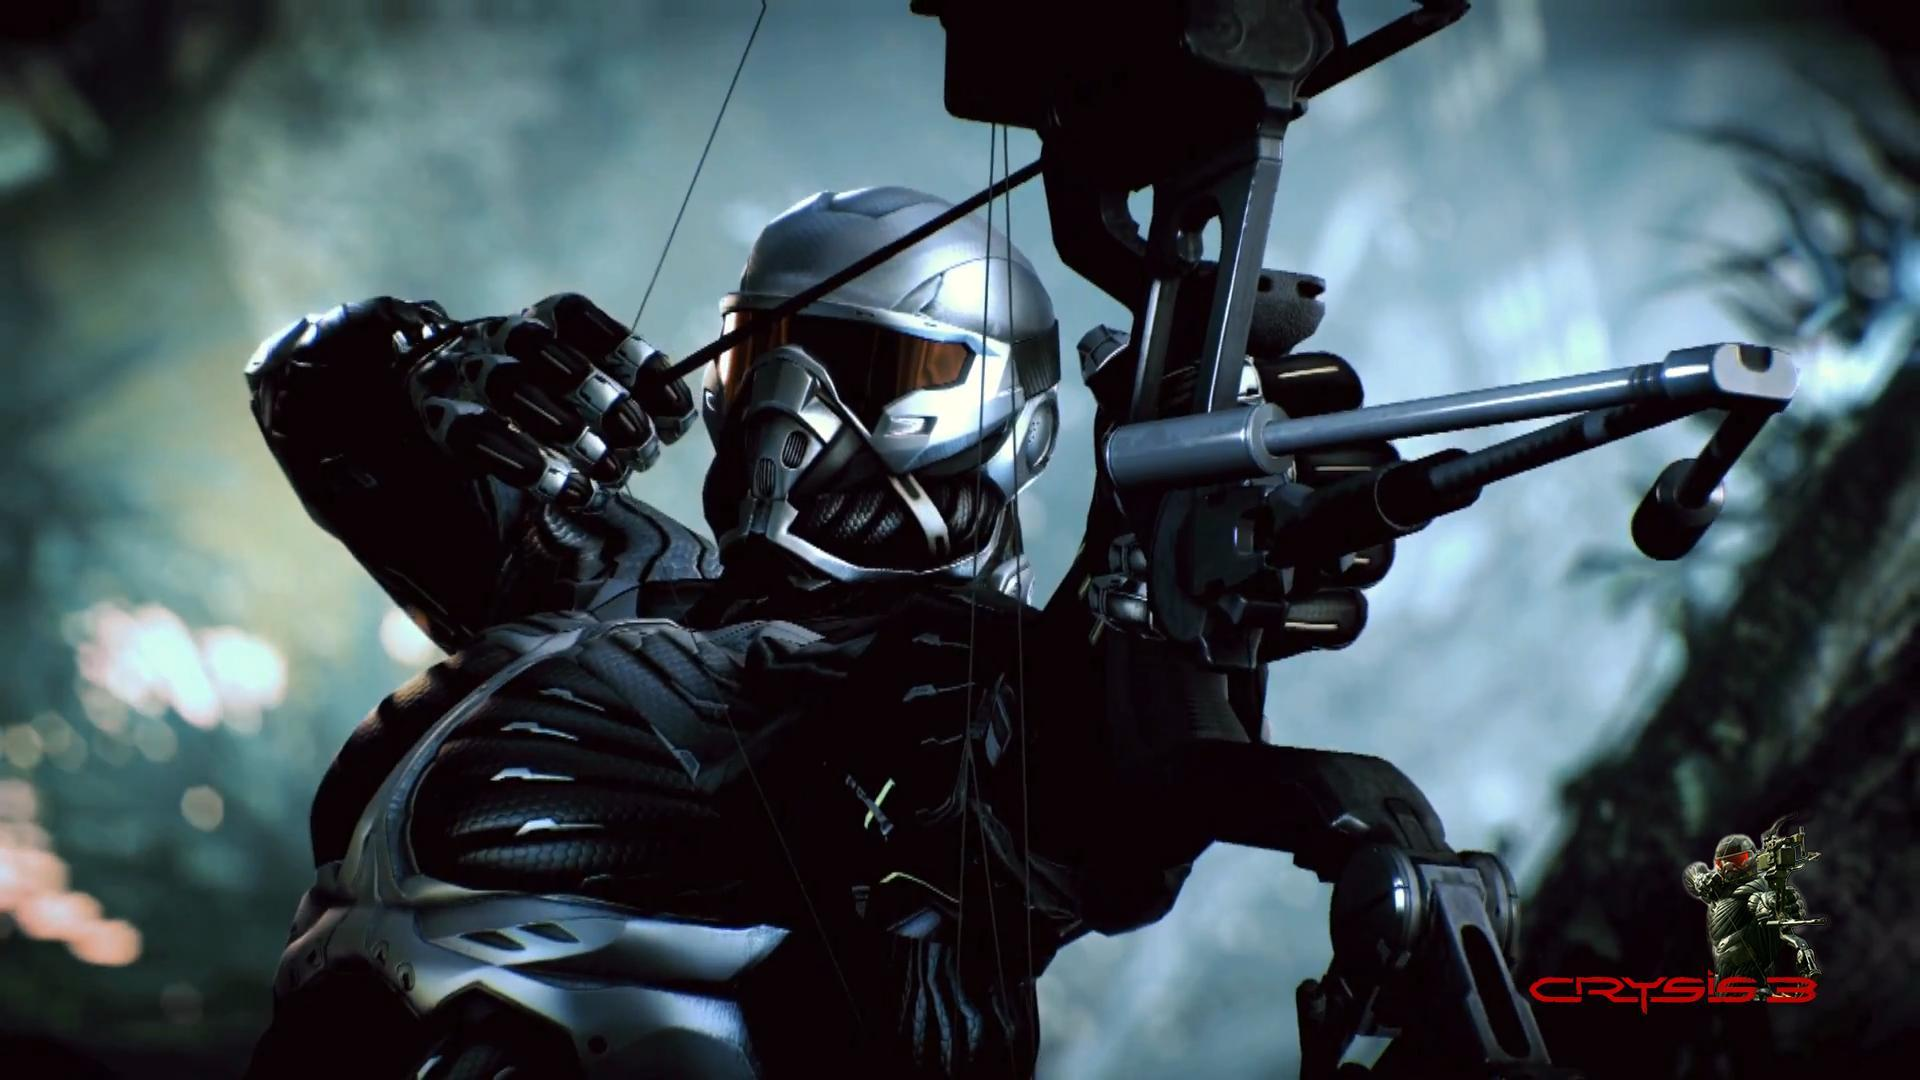 Crysis Wallpapers HD